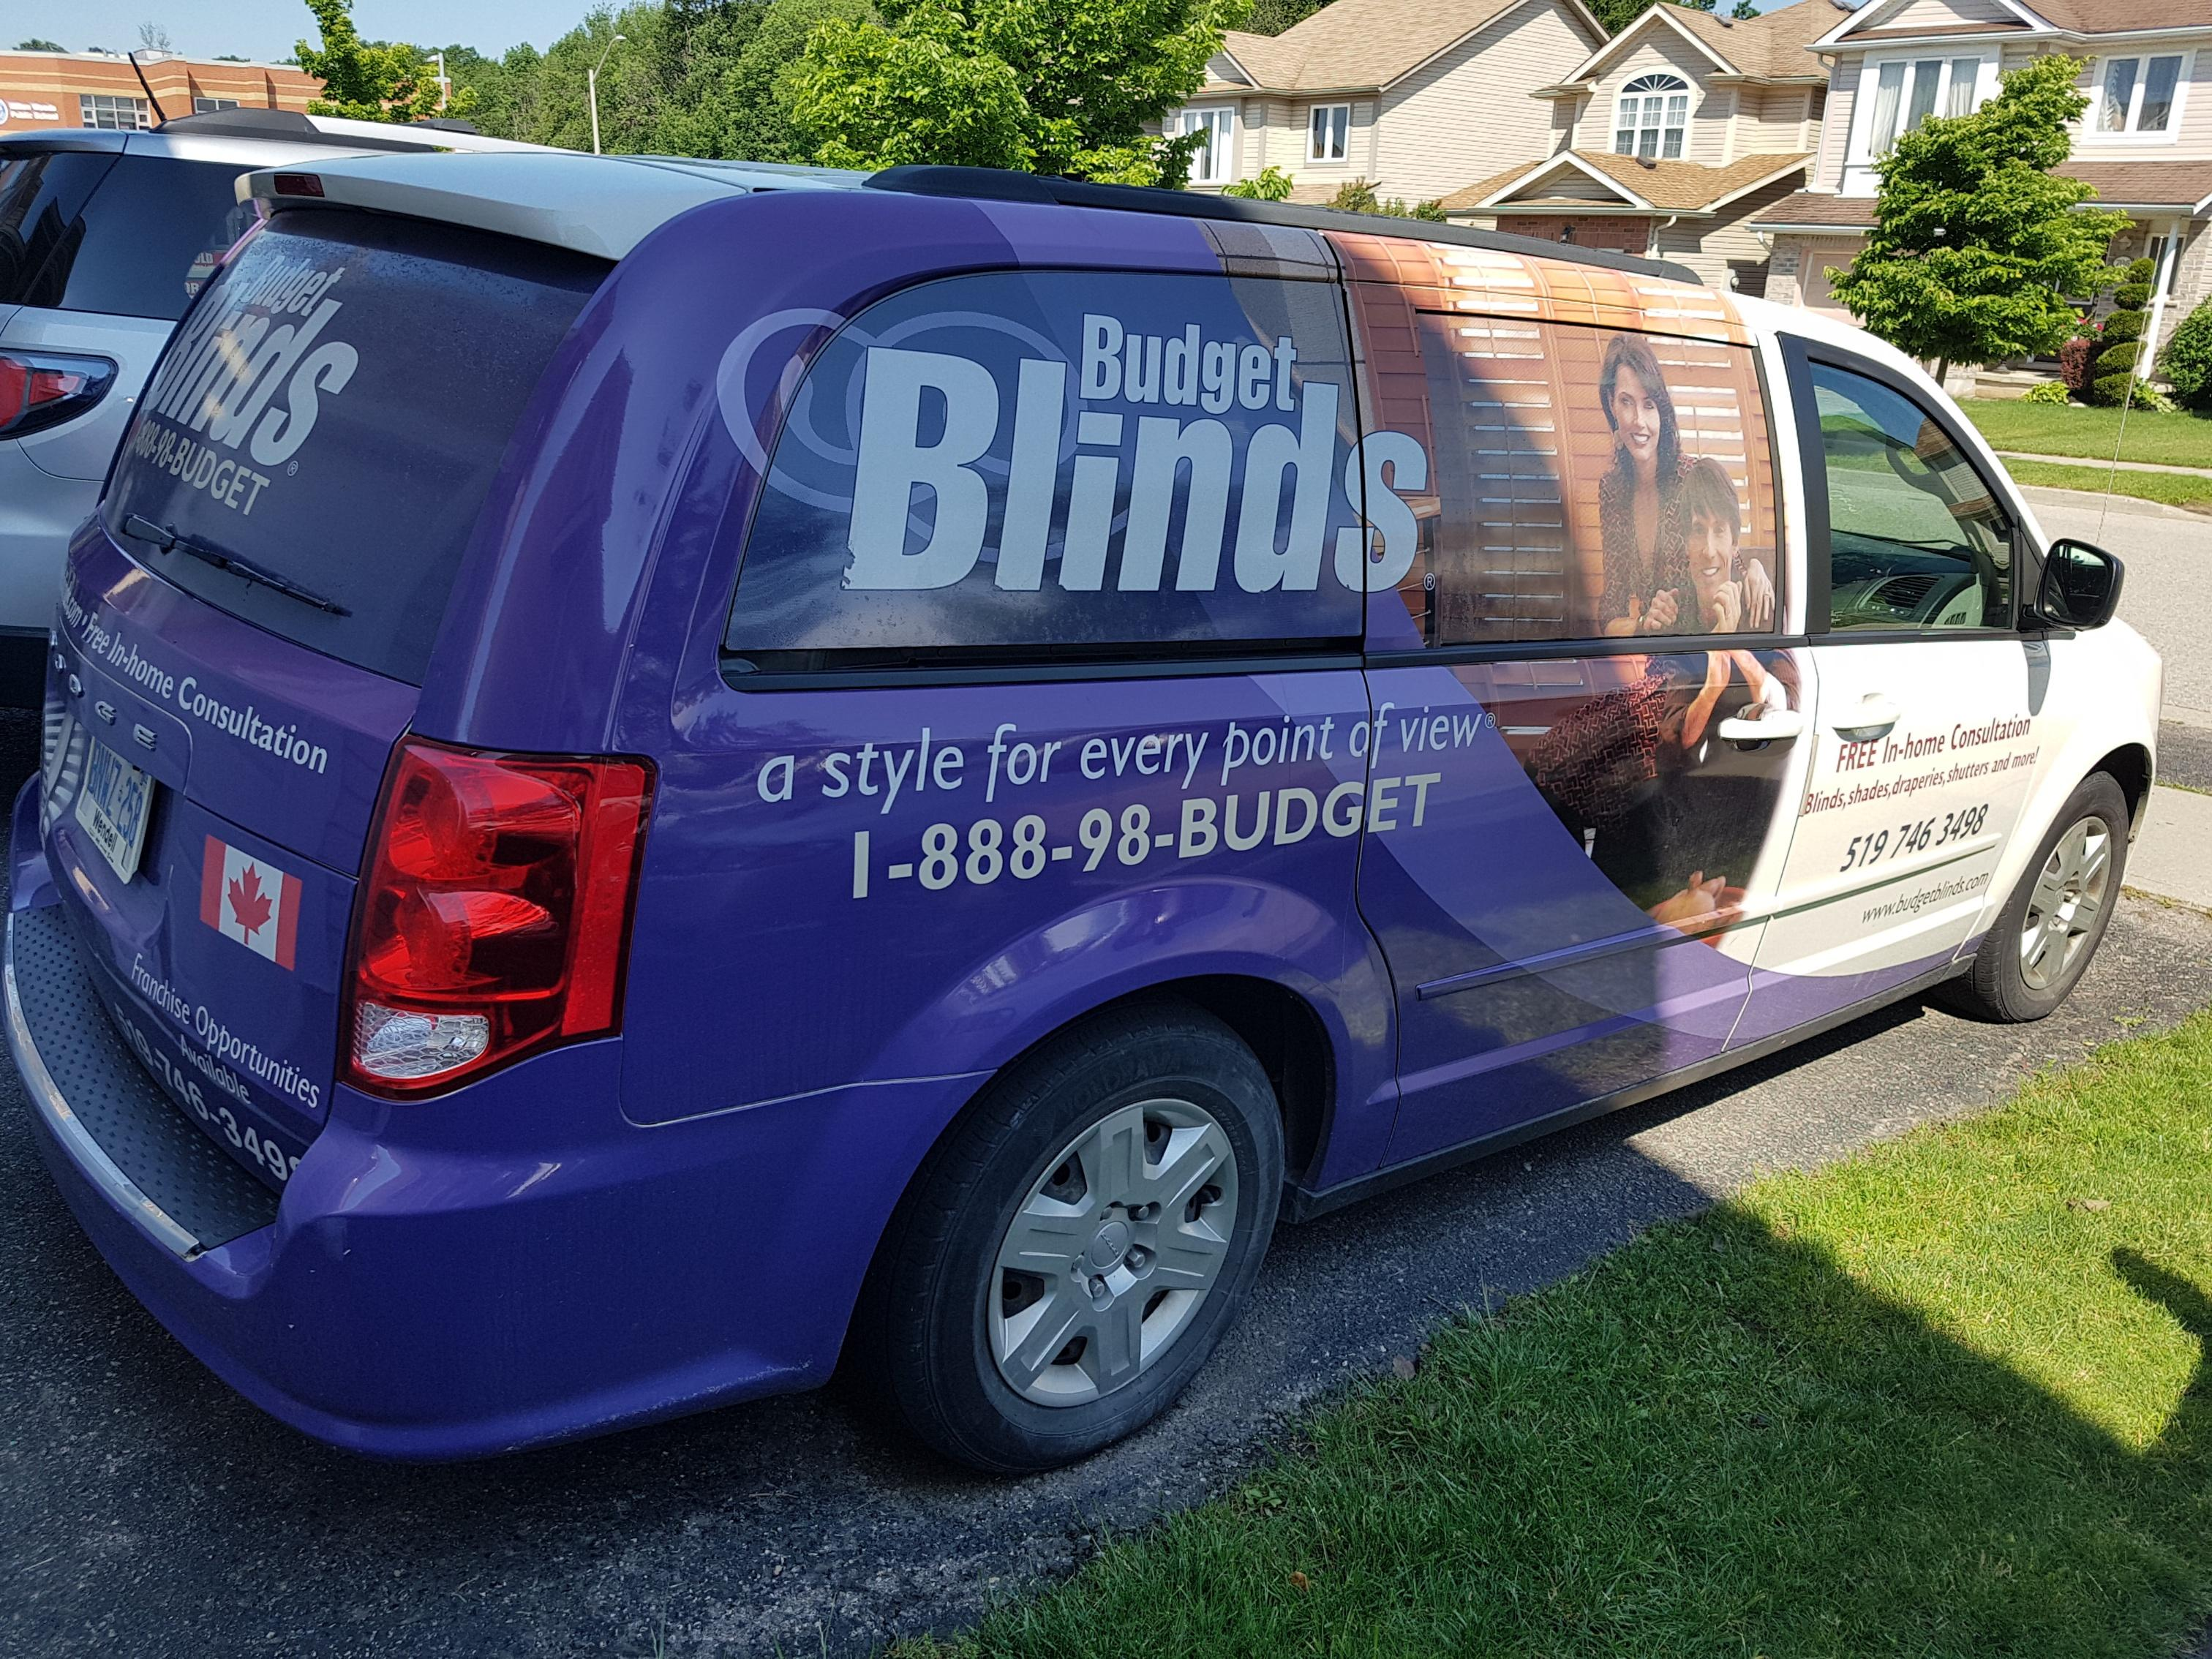 Budget Blinds à Waterloo: Our vans are like a mobile showroom. Rather than selecting colours and finishes in a store and then wondering if they will work with the lighting, paint and furniture in your home, we eliminate all of the uncertainty by bringing the samples to you. Convenience and peace of mind.